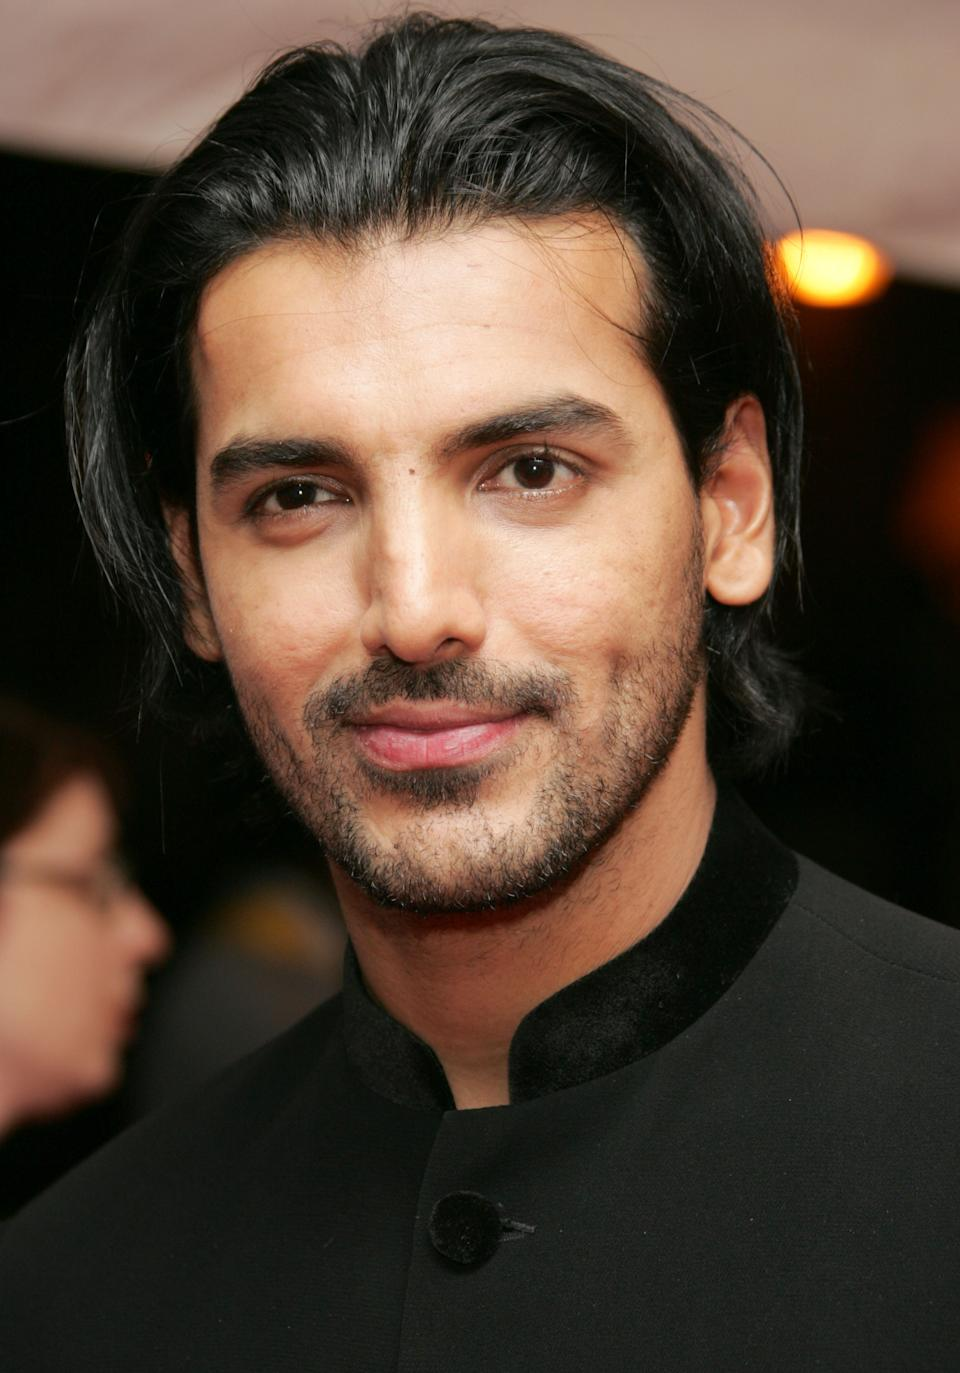 John Abraham When it comes to hair our boys aren't far behind. Who can forget the Dhoom actor John Abraham created with his long, straight style in 2005. Every college going guy at the time was going for the look.